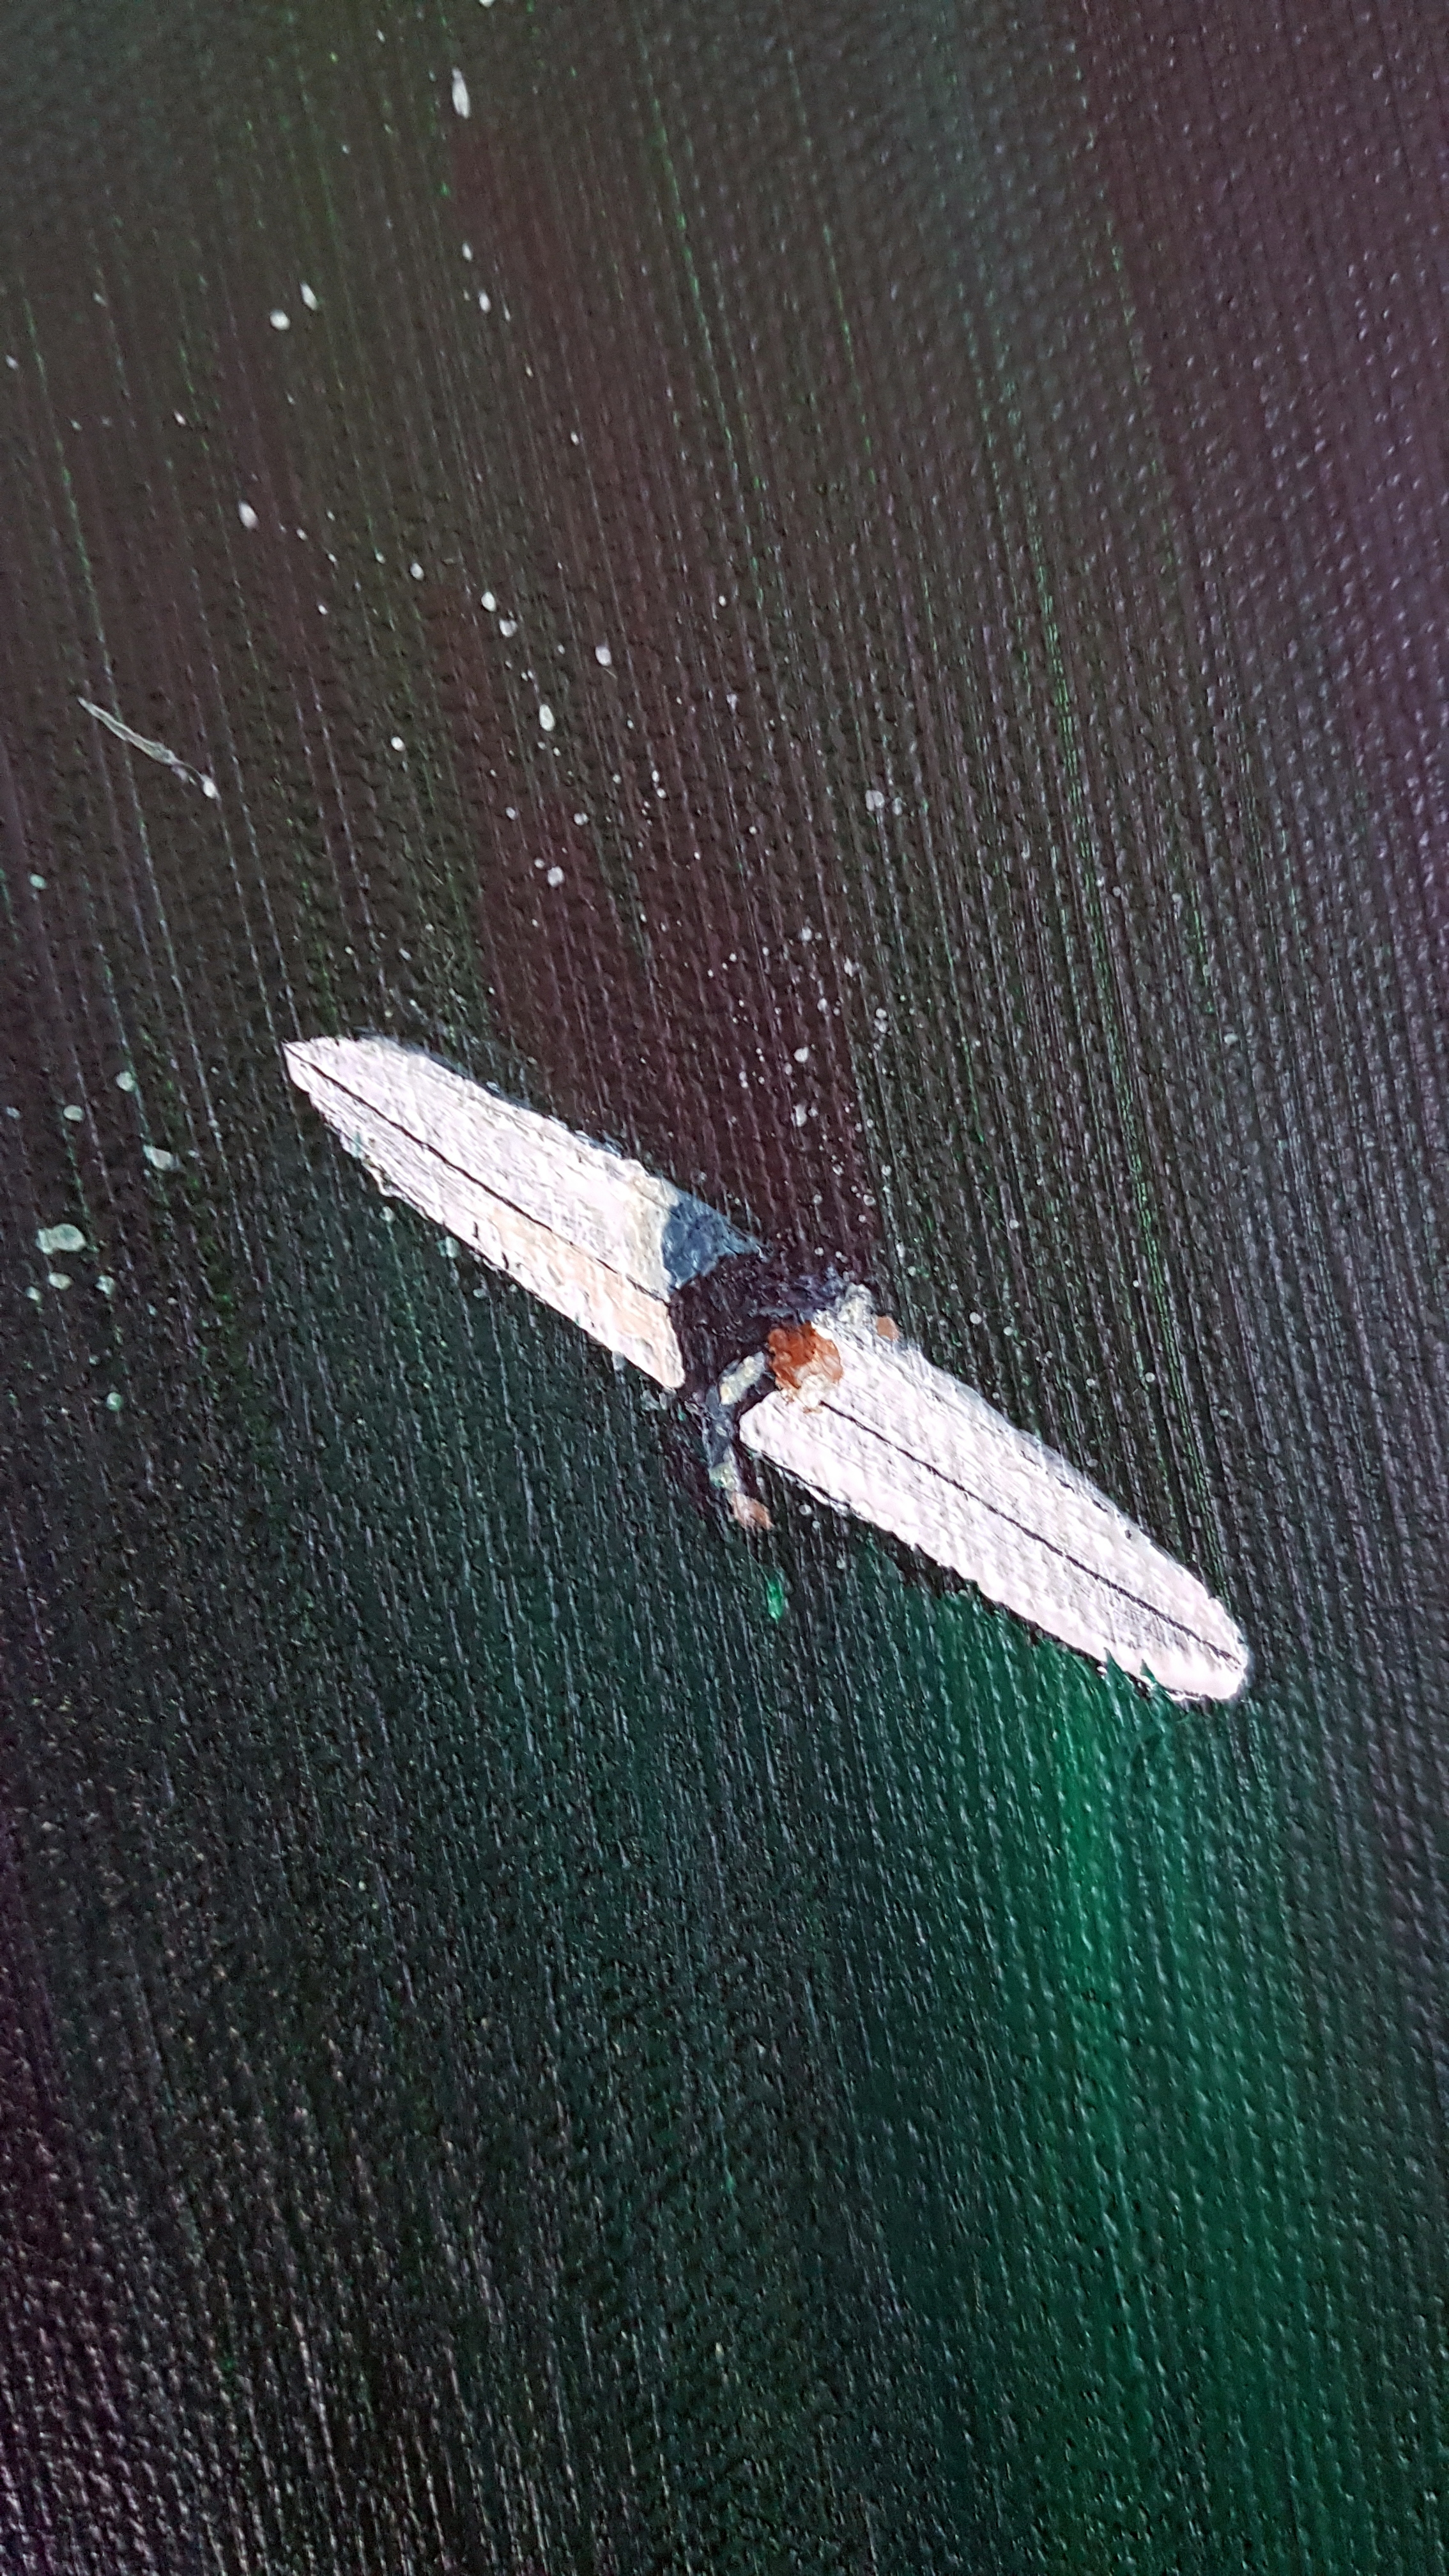 Art. Original painting by Jo Allum 'Aerial surf II'